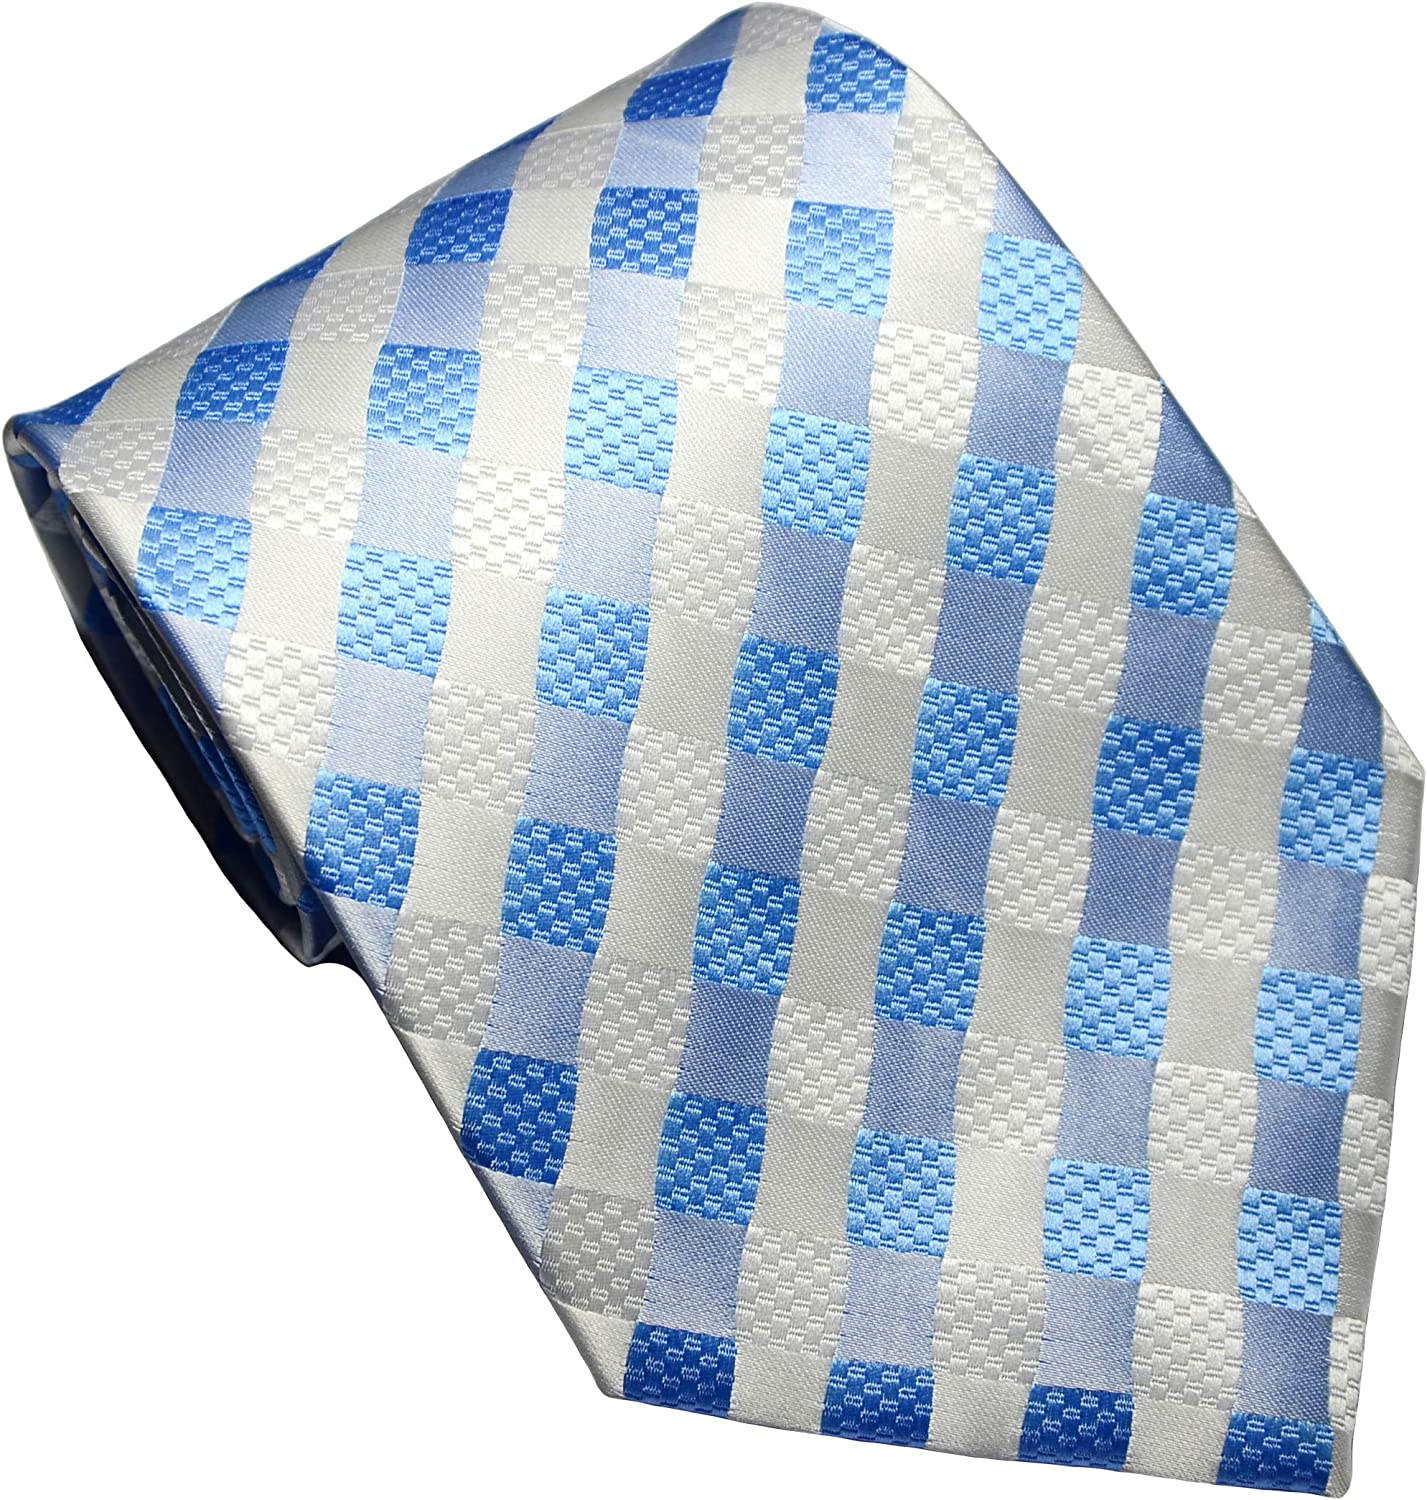 Today's only NEW EXT Collectino 100% Silk Classic Max 51% OFF Men's Tie Necktie Checks